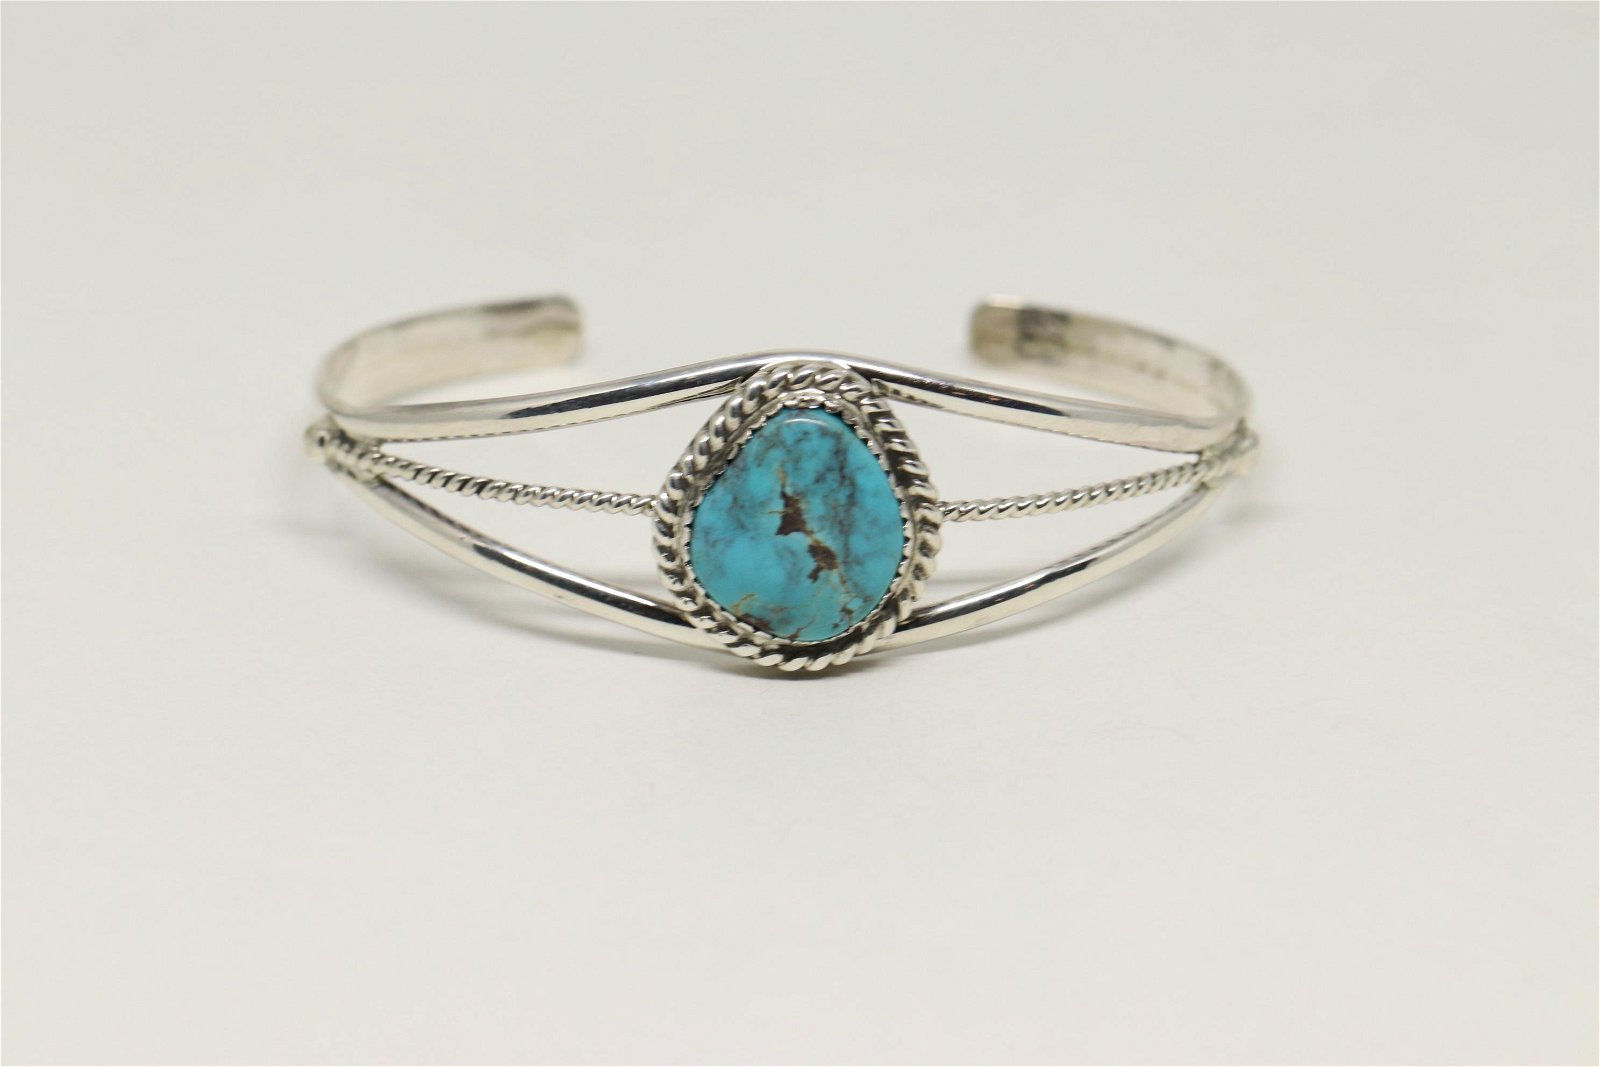 Native American Navajo Turquoise Bracelet By Lenore.